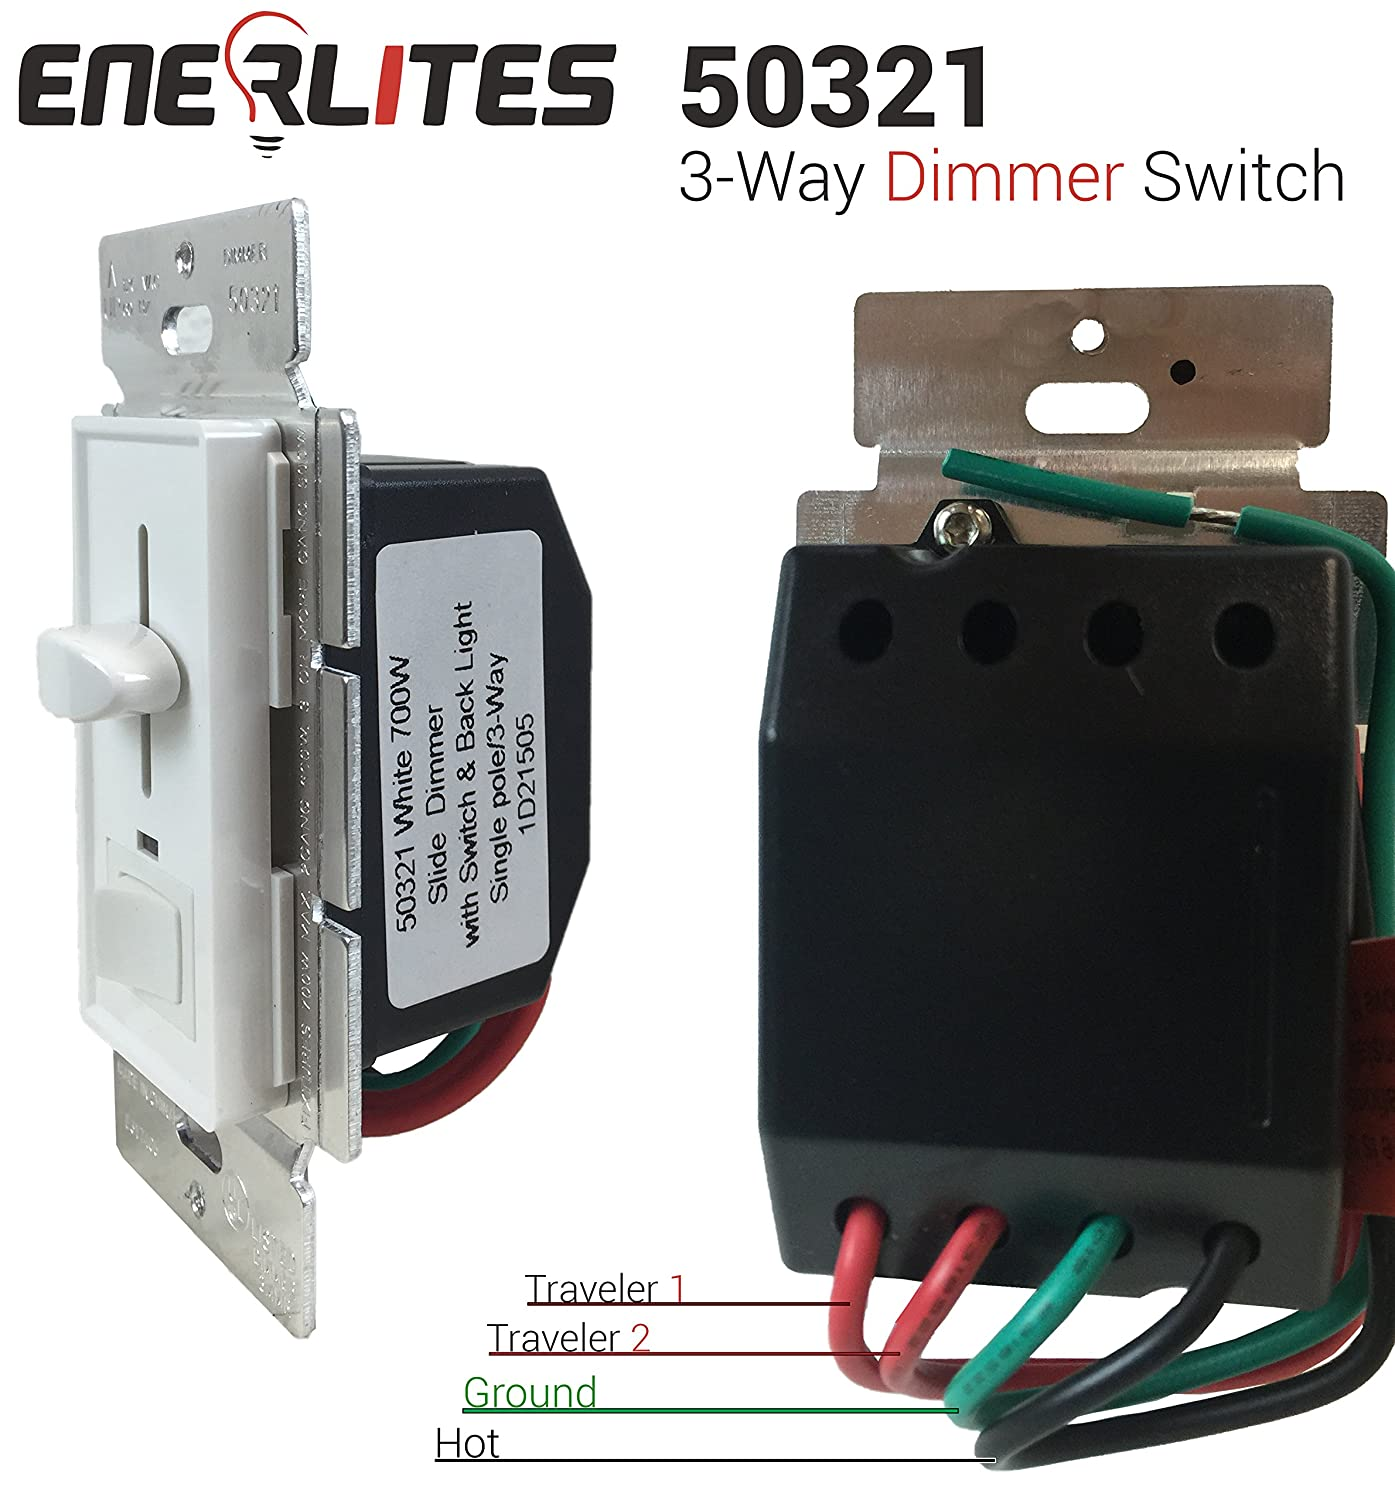 Enerlites 50321 Slide Dimmer For Incandescent Three Way 700w W Wiring A 3 Switch Single Pole Led Indicator Almond